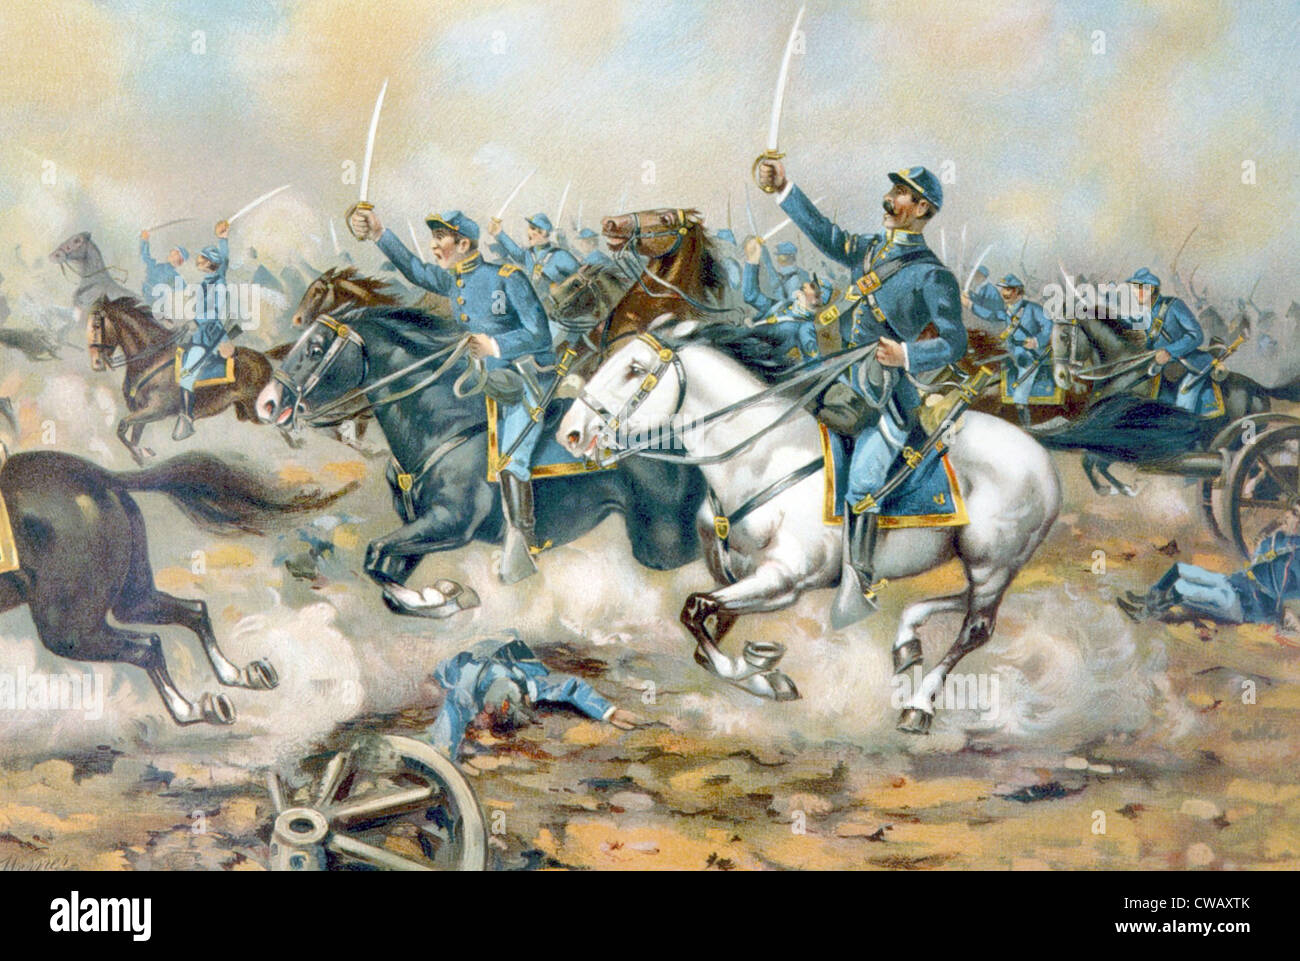 The Battle of Gaines' Mill, Union cavalry charge, 1862 - Stock Image